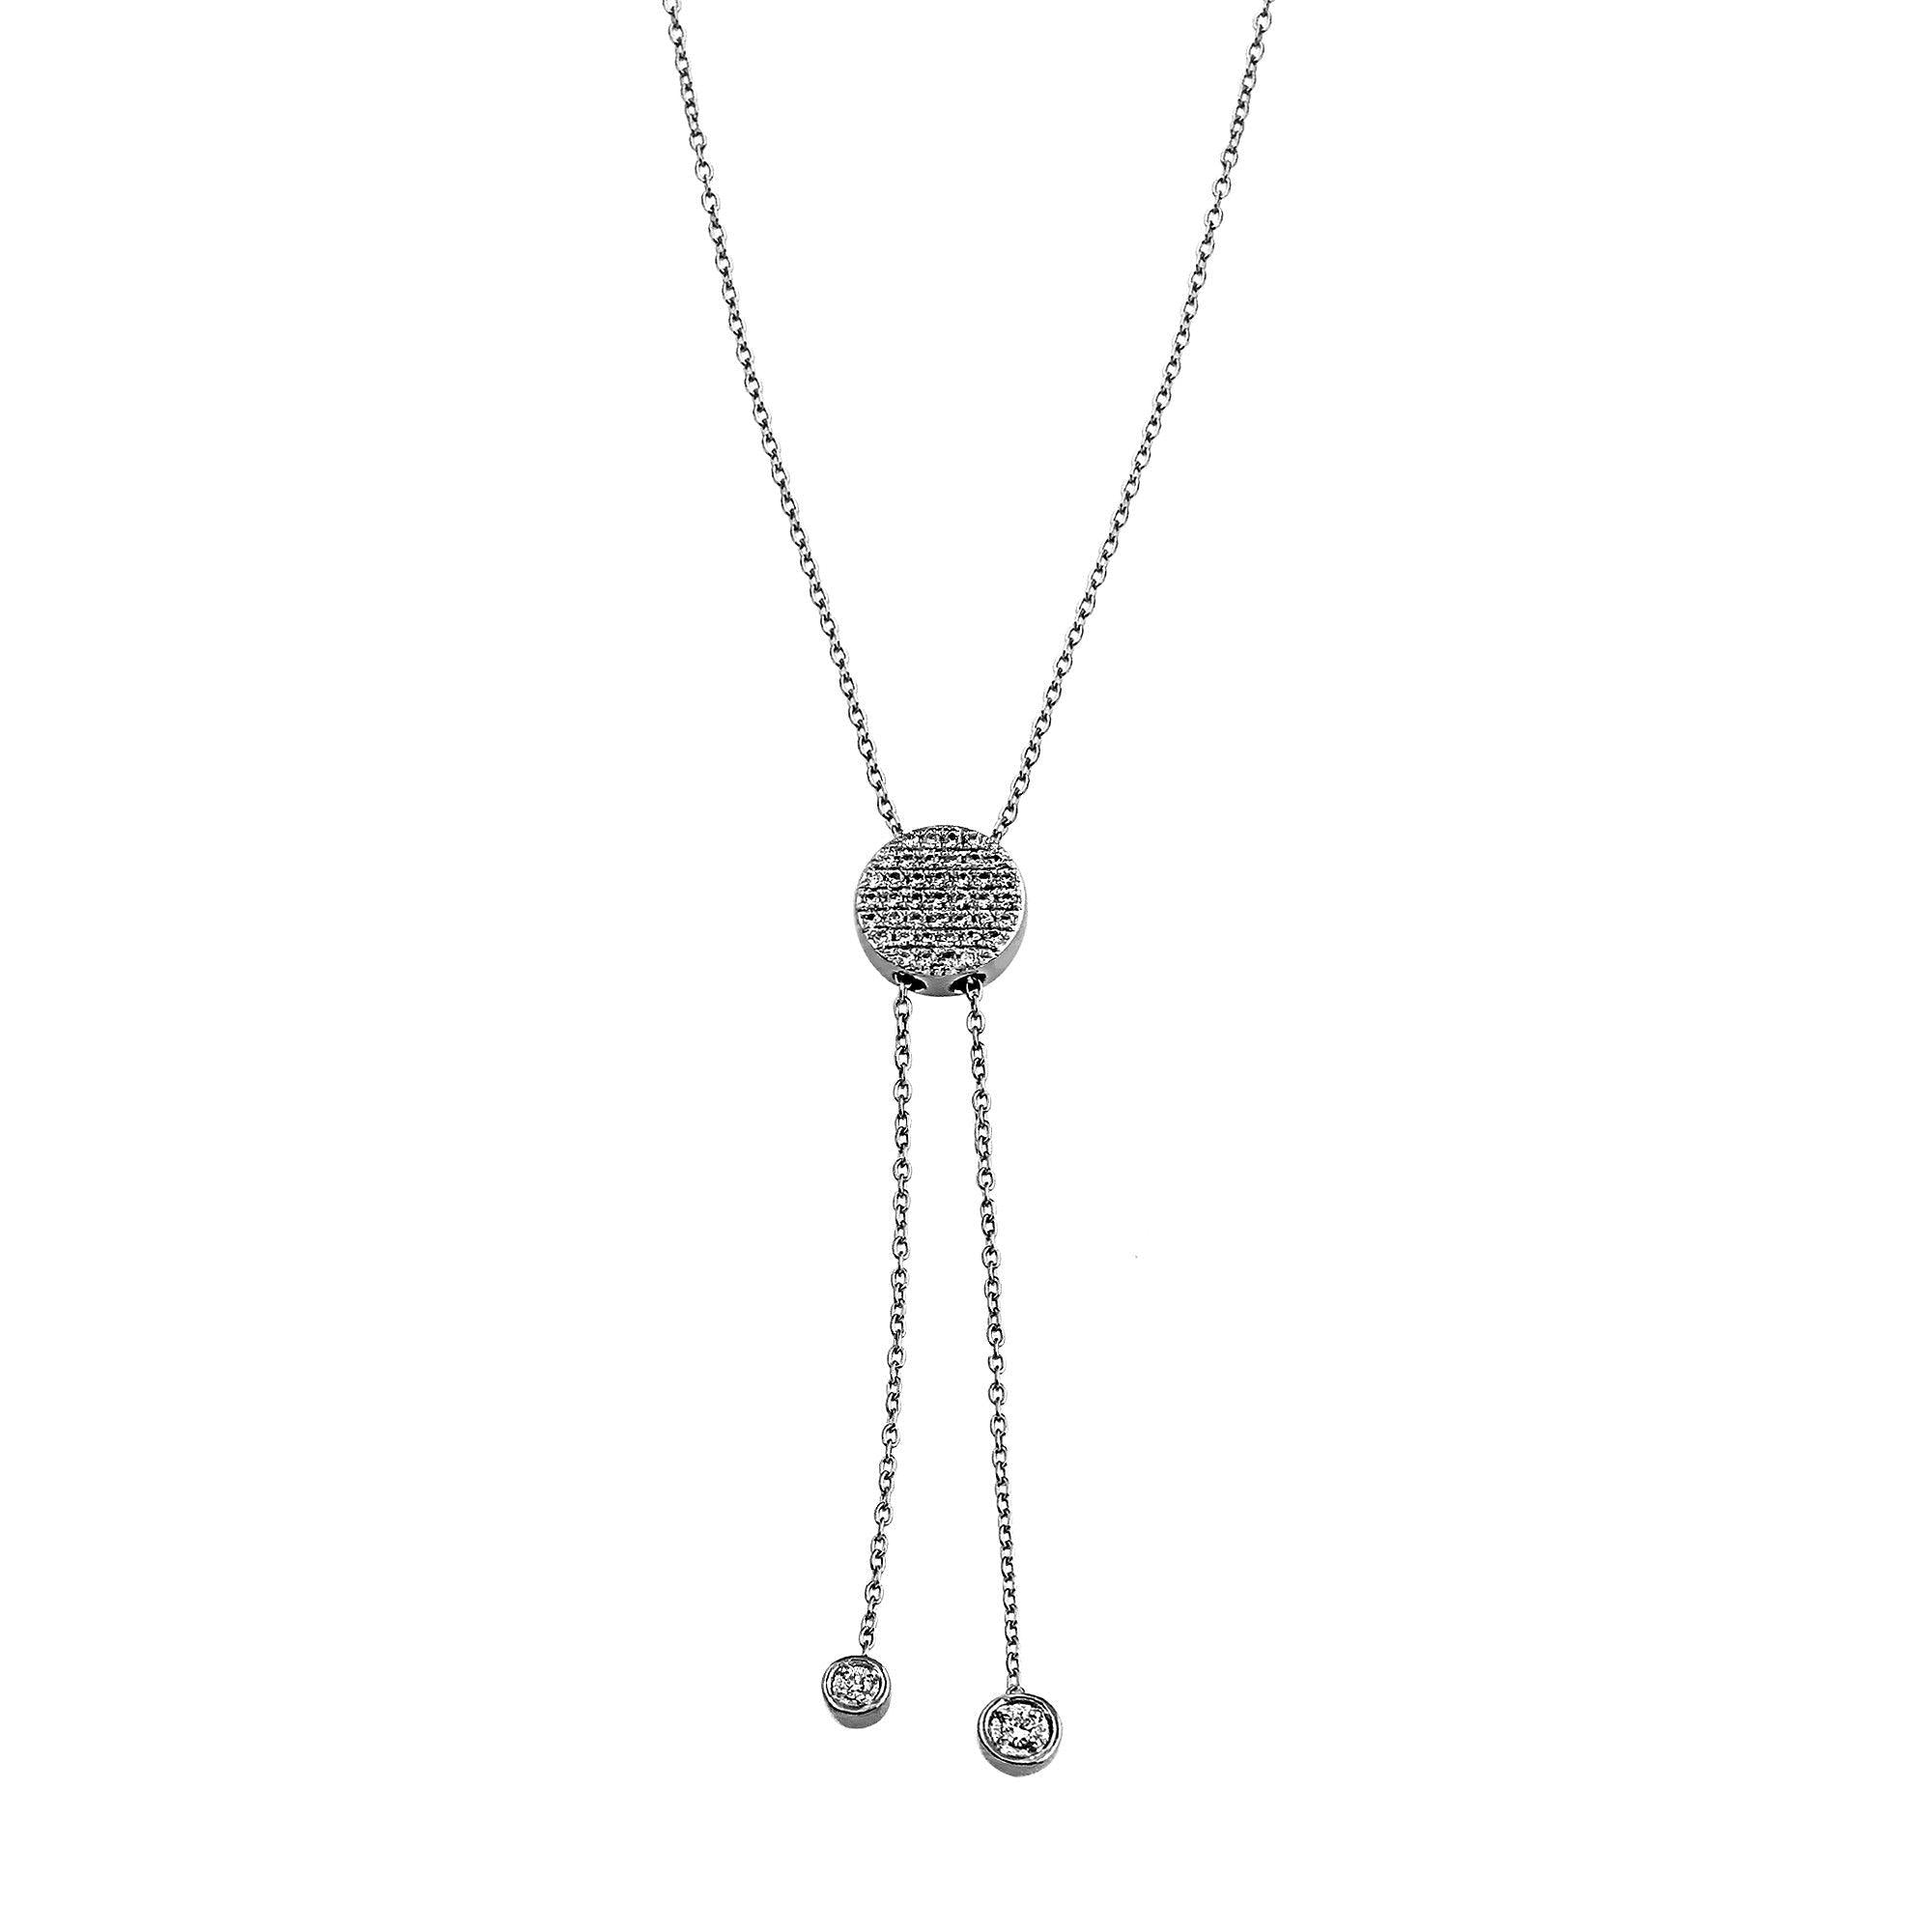 Nuri & Ash Blaze Lariat Diamond Necklace - Sterling Silver